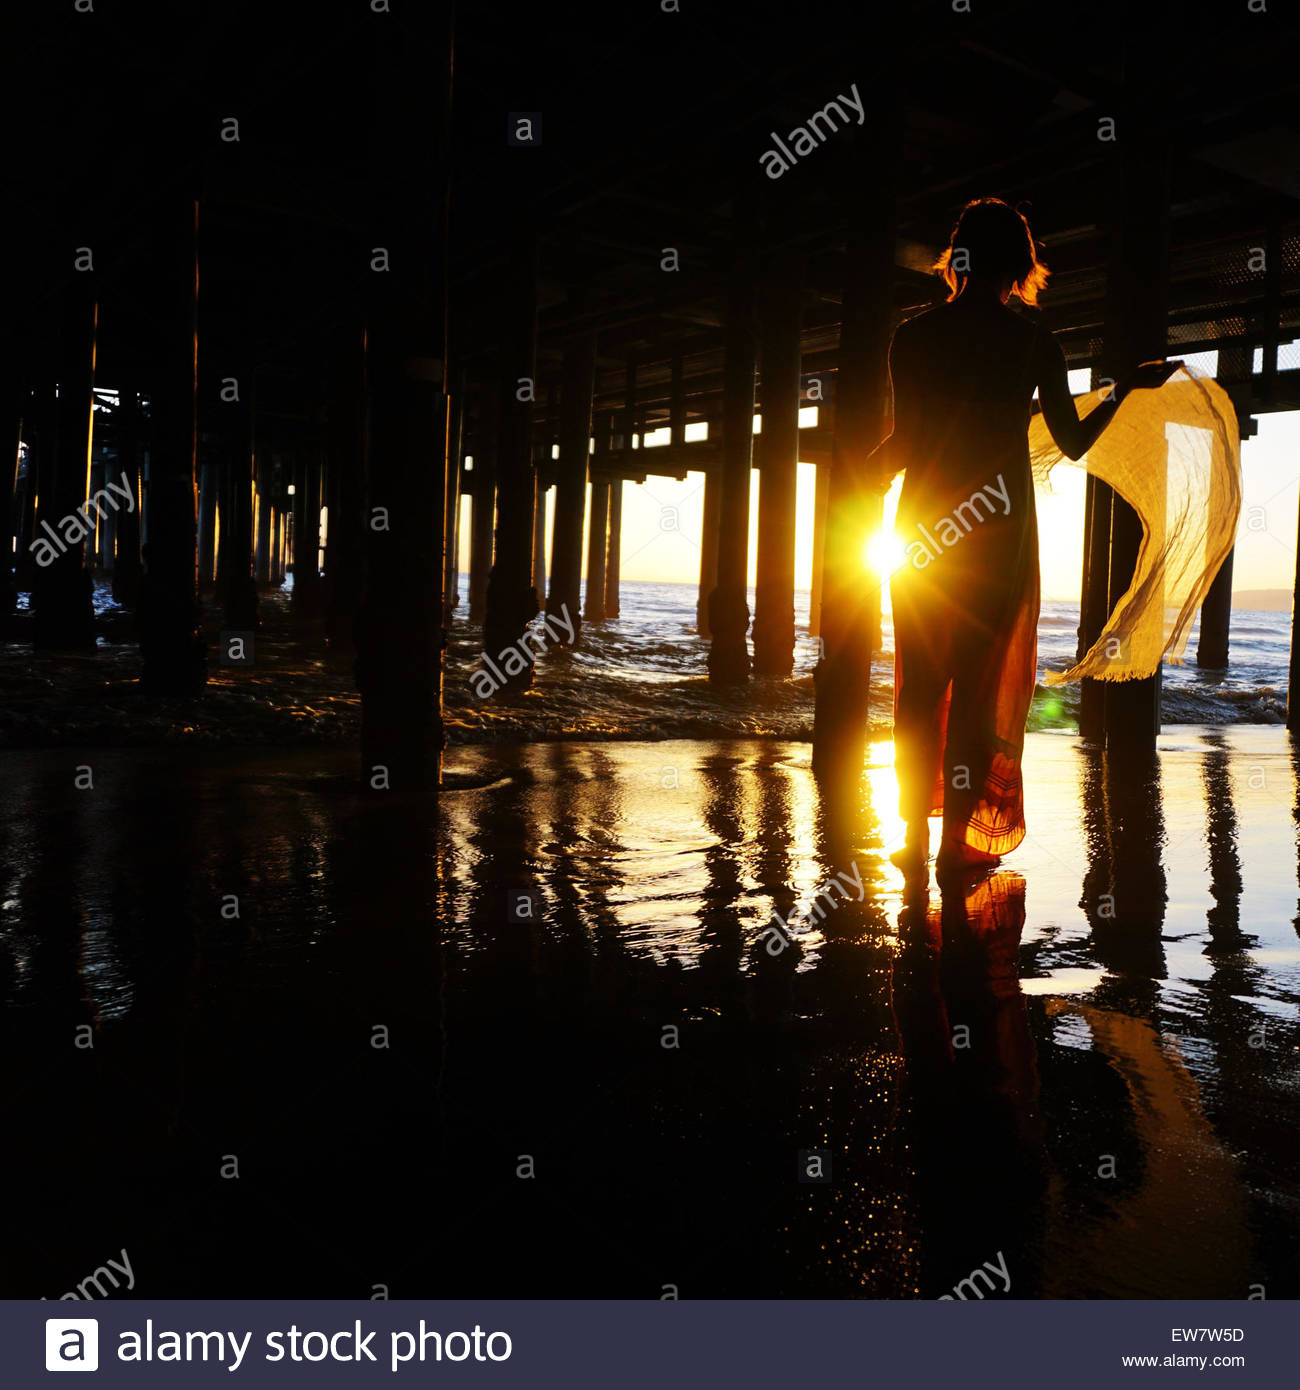 Silhouette of a woman standing under a pier - Stock Image